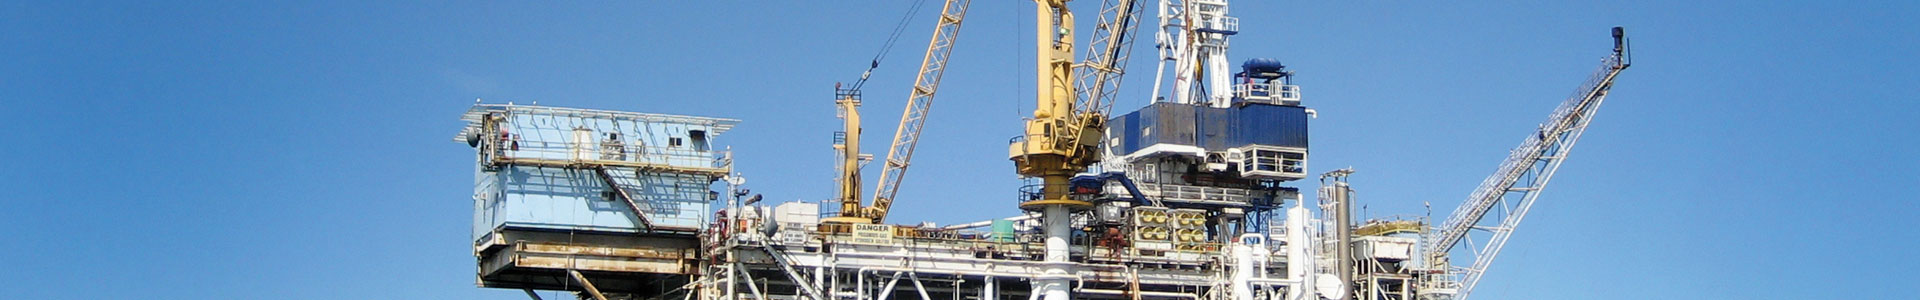 Drilling Service Rigs